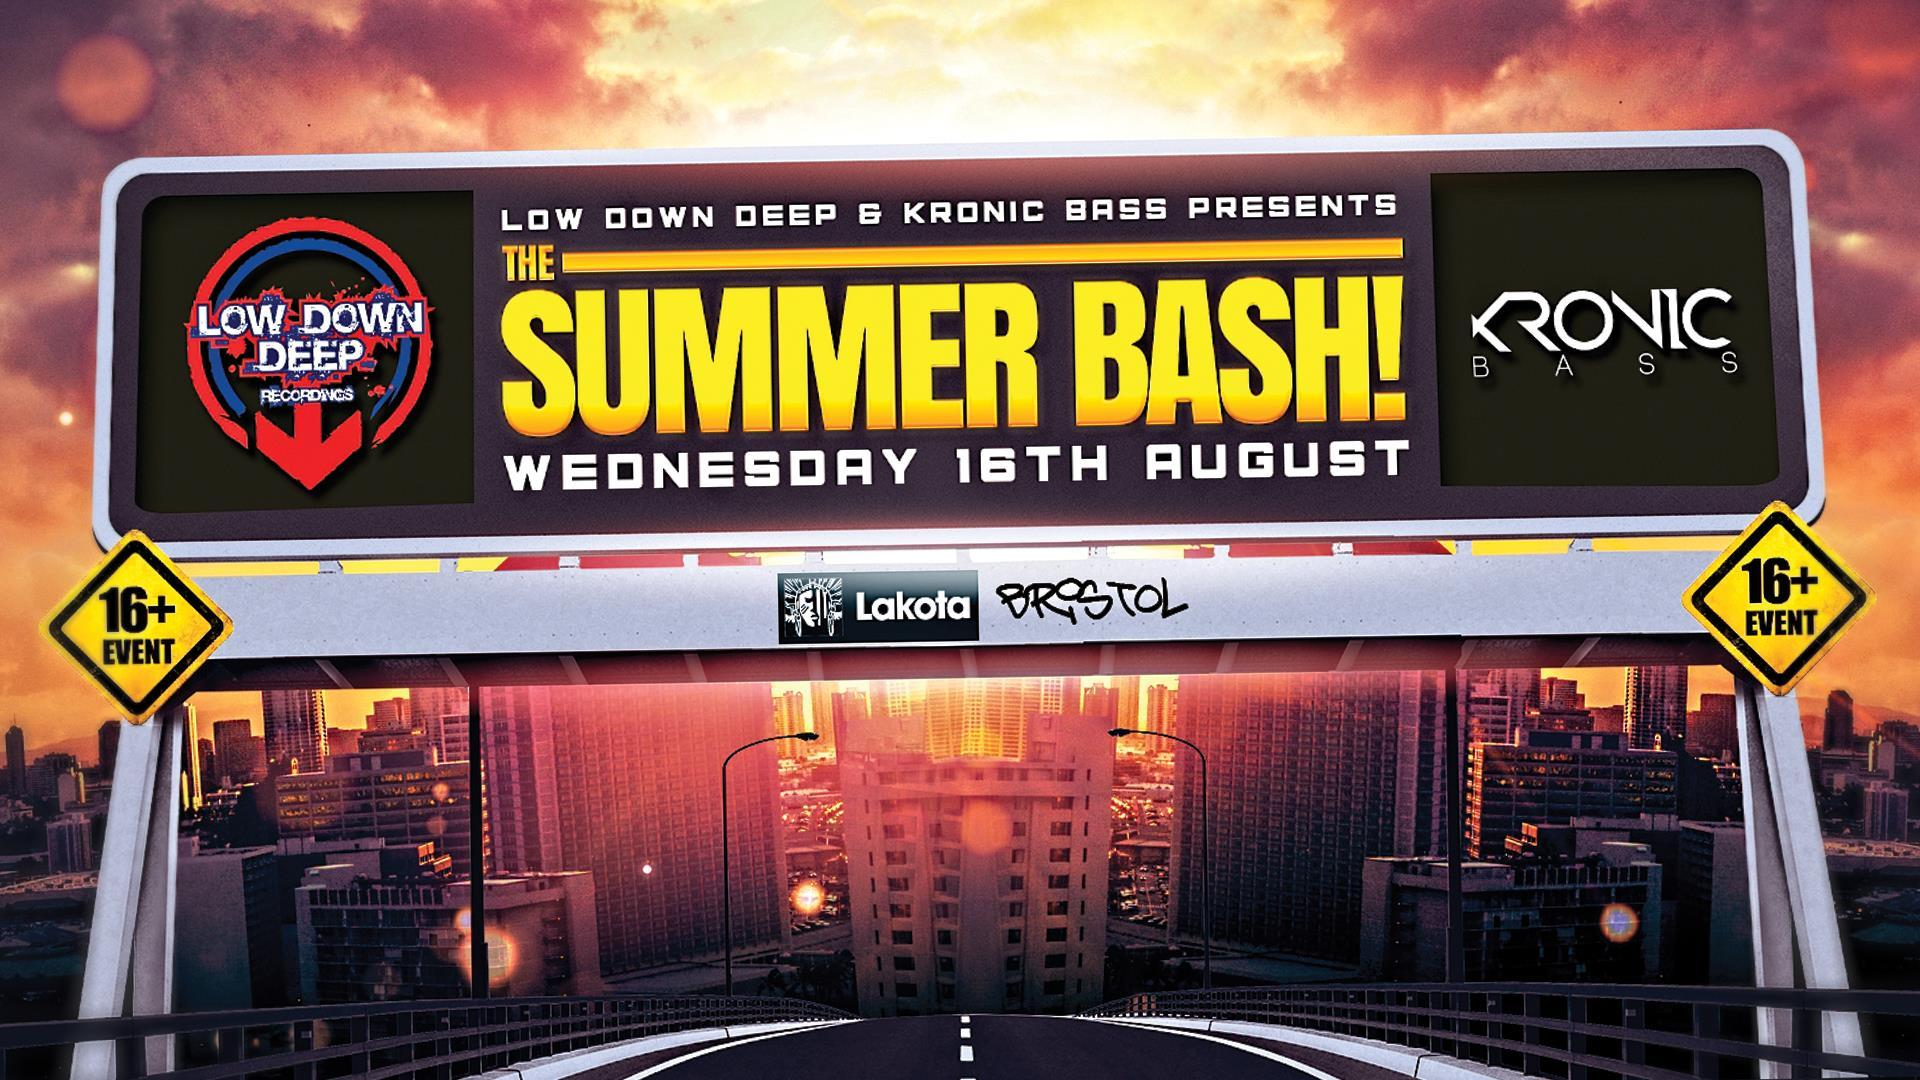 Low Down Deep & Kronic Bass Presents: The Sum